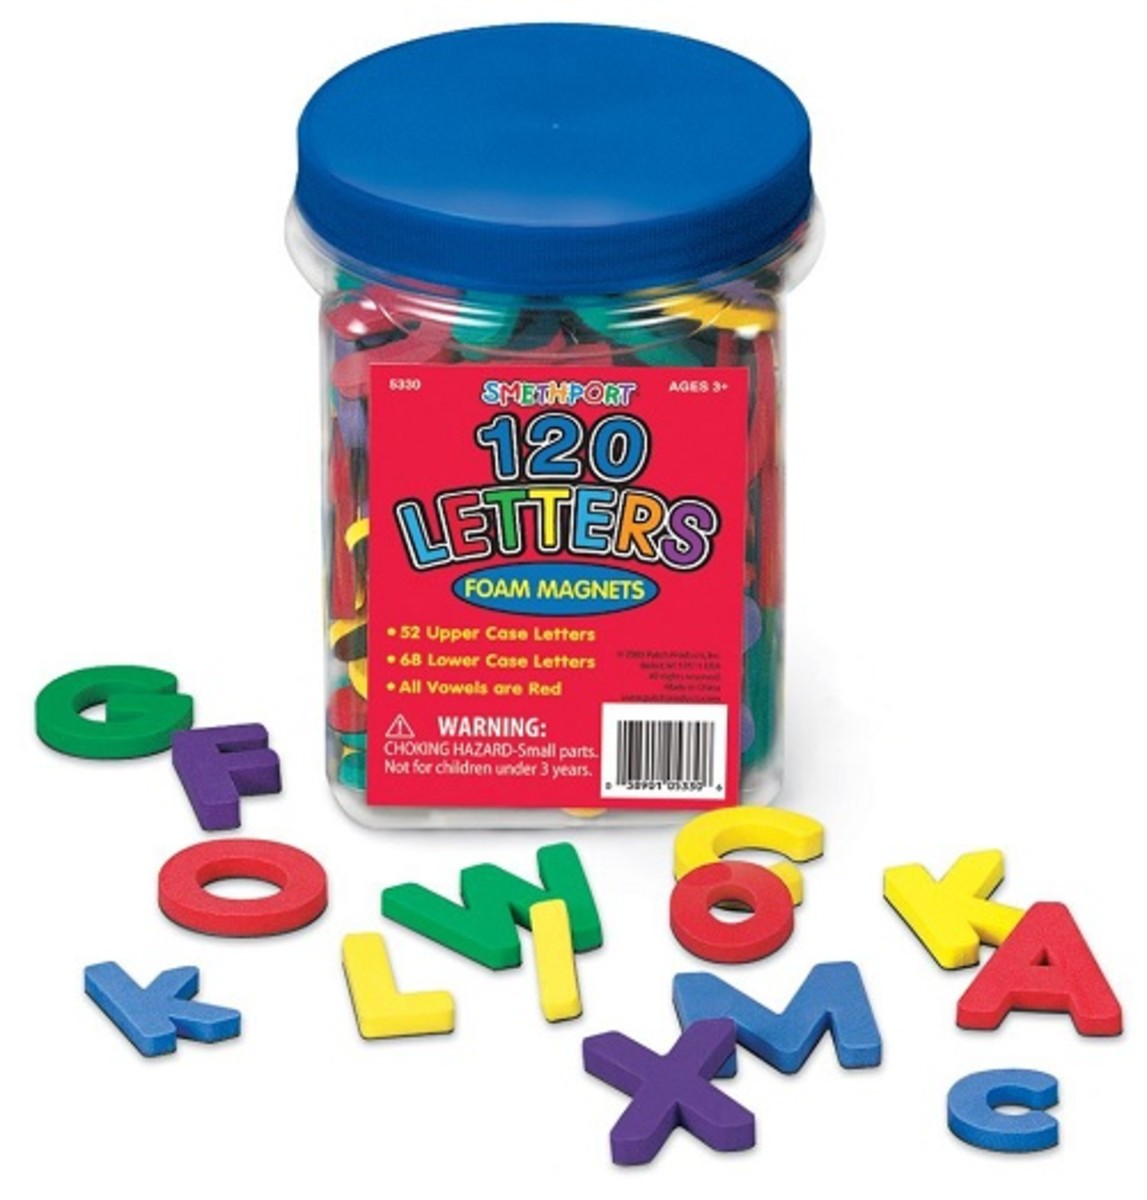 Try these foam magnetic letters, they are highly rated by the buyers